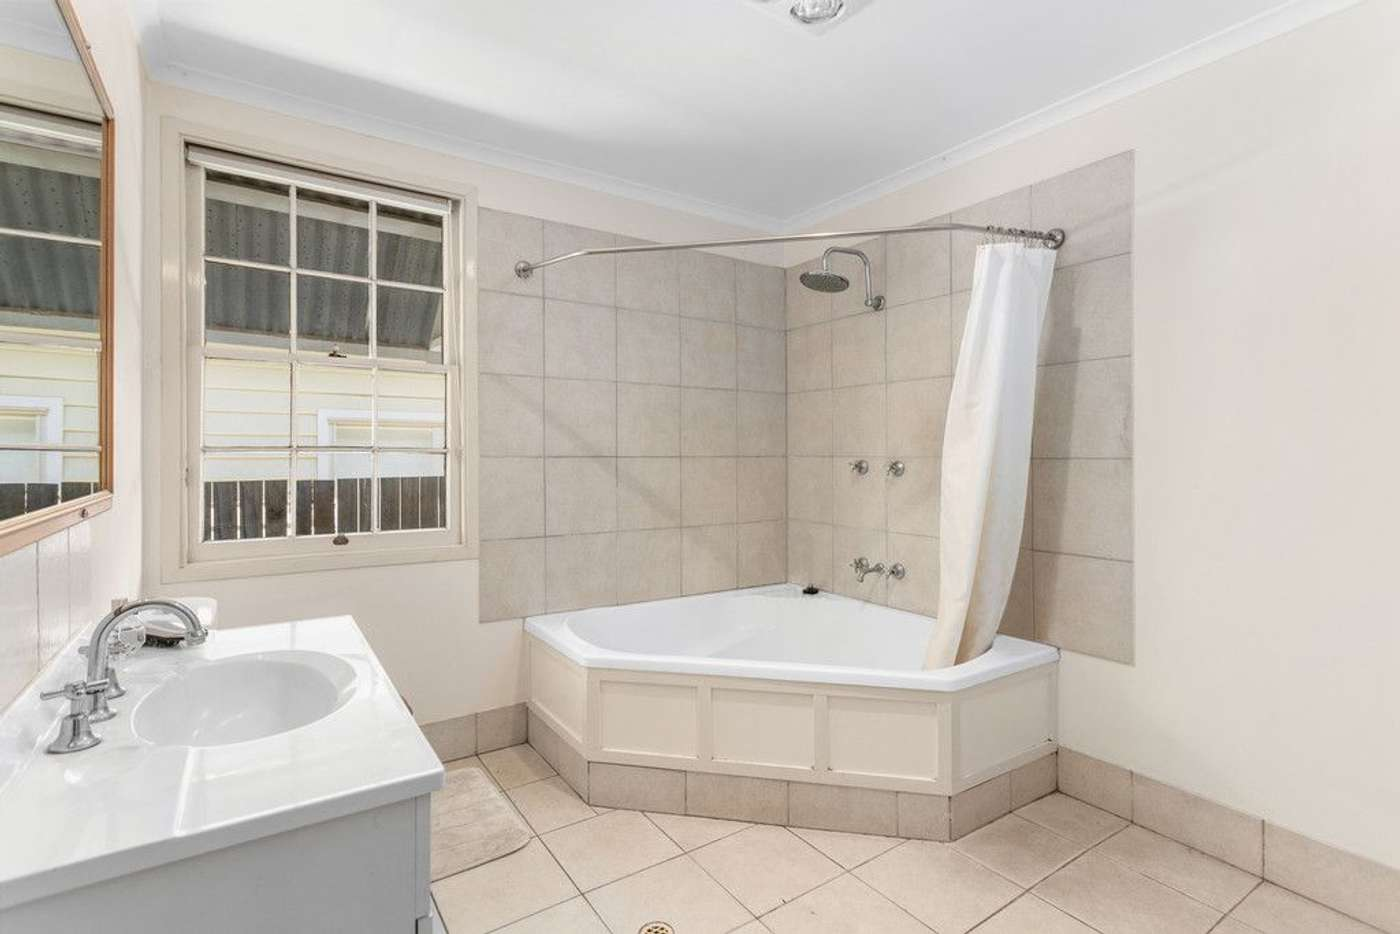 Sixth view of Homely house listing, 7 Pitt Street, East Toowoomba QLD 4350